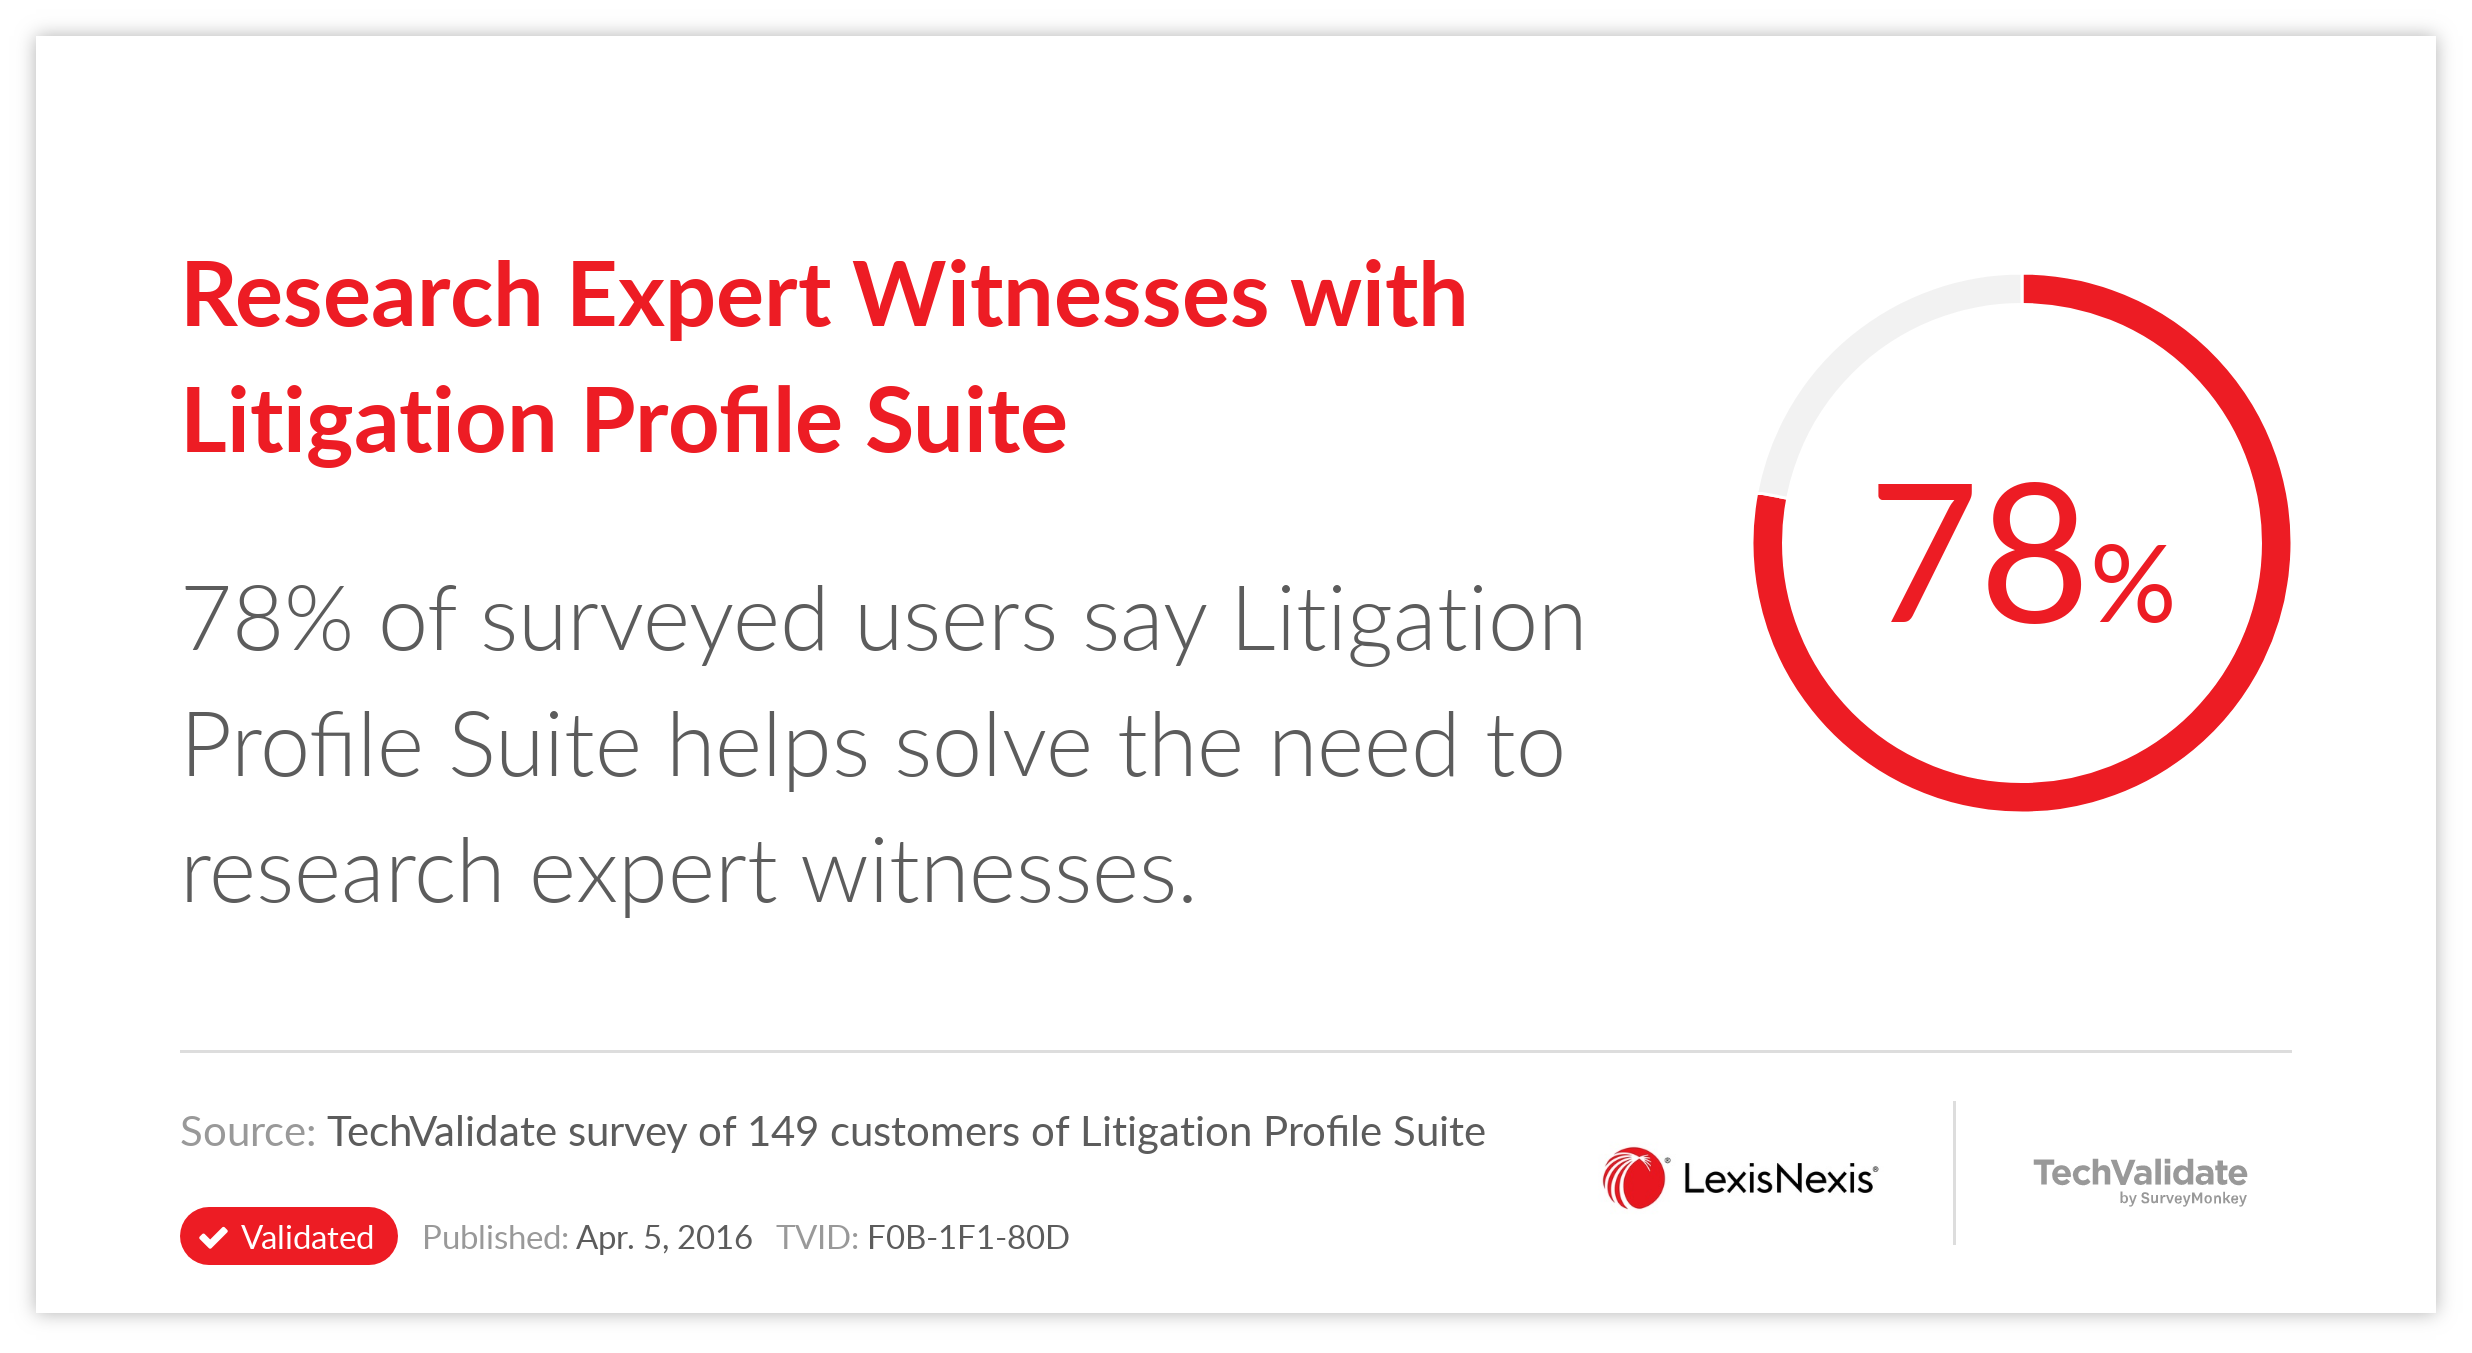 Research Expert Witnesses with Litigation Profile Suite